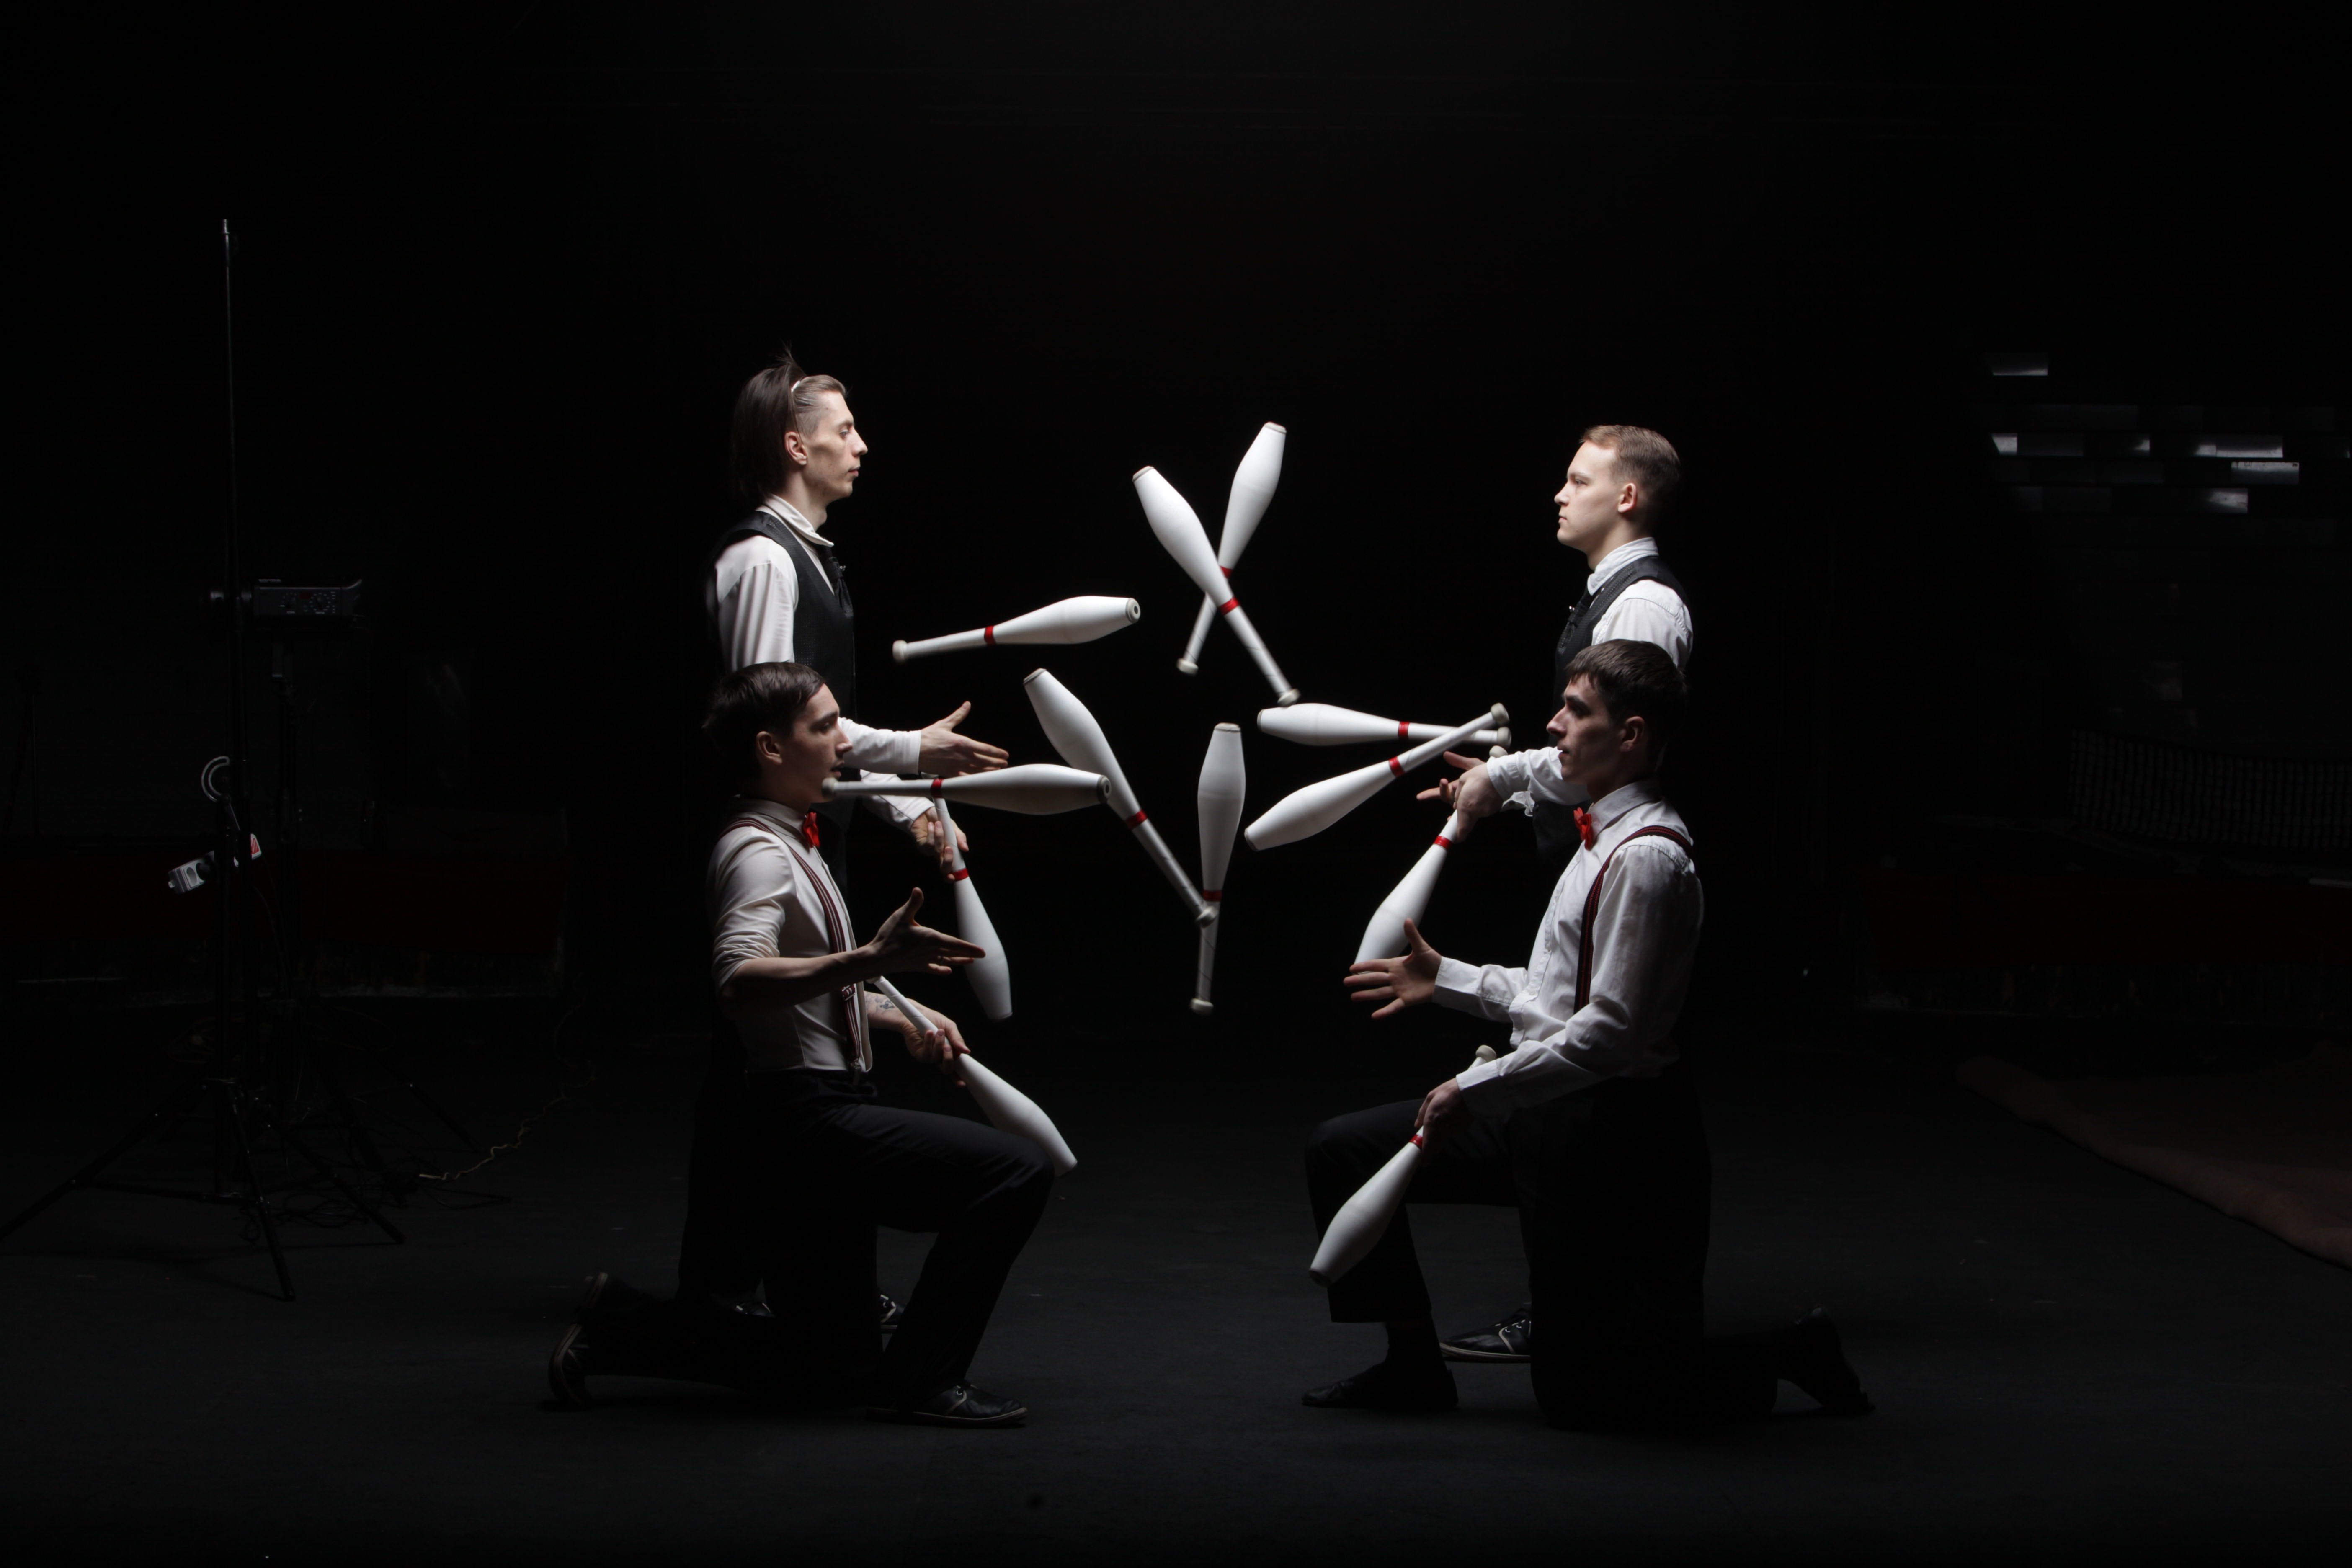 Circus Act of Group Jugglers